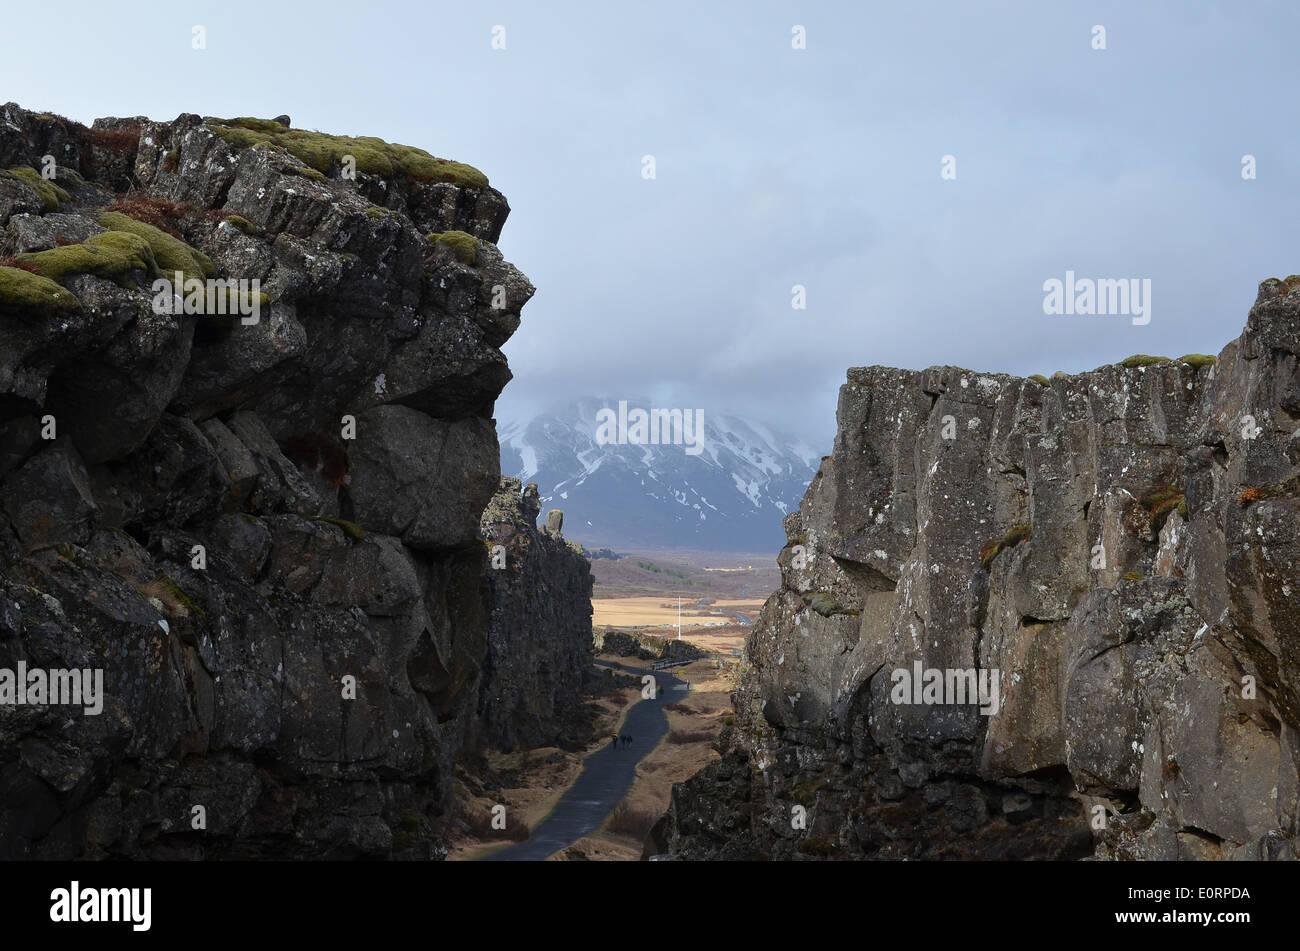 The Almannagjá rift between the American and Eurasian tectonic plates at Þingvellir, Iceland. Stock Photo